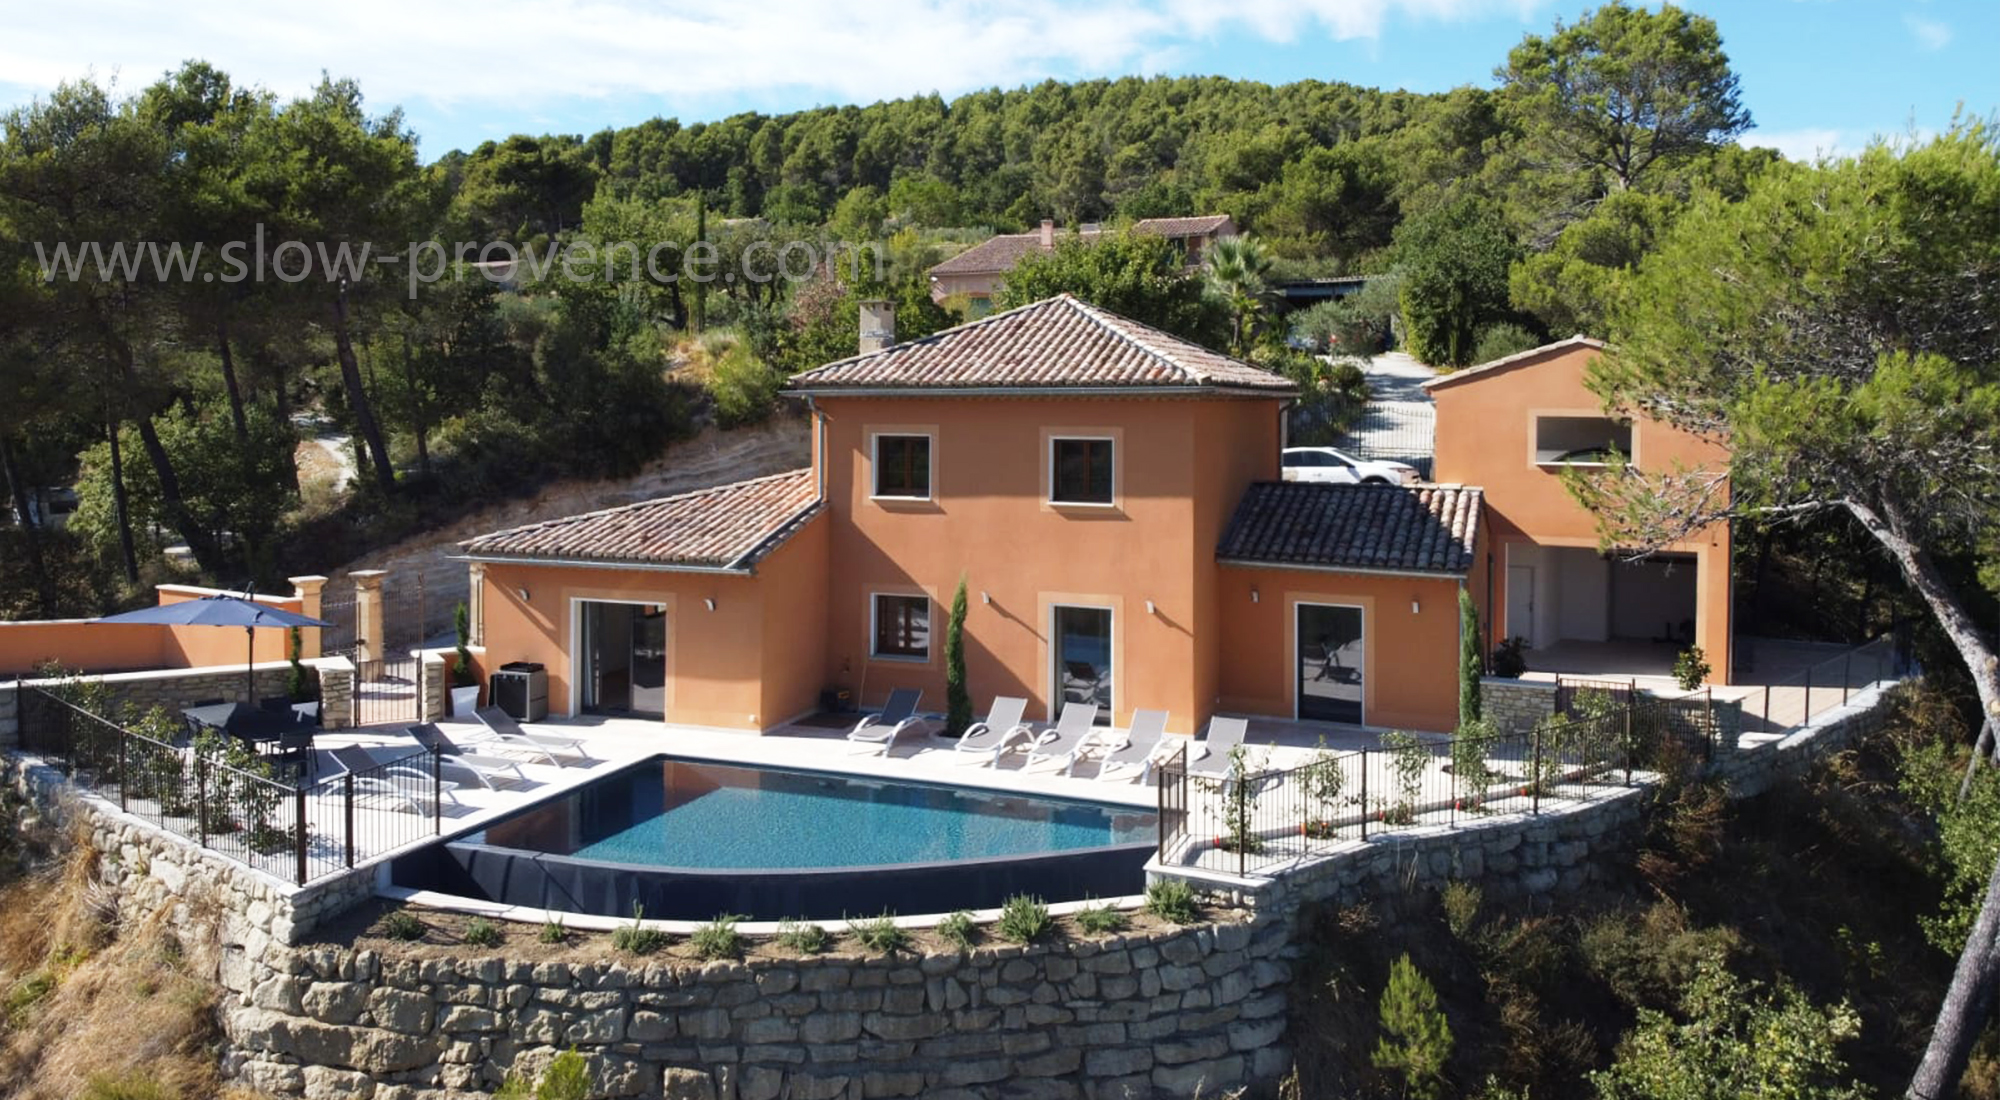 View on the beautiful rental villa in provence with private ppol and stunning view